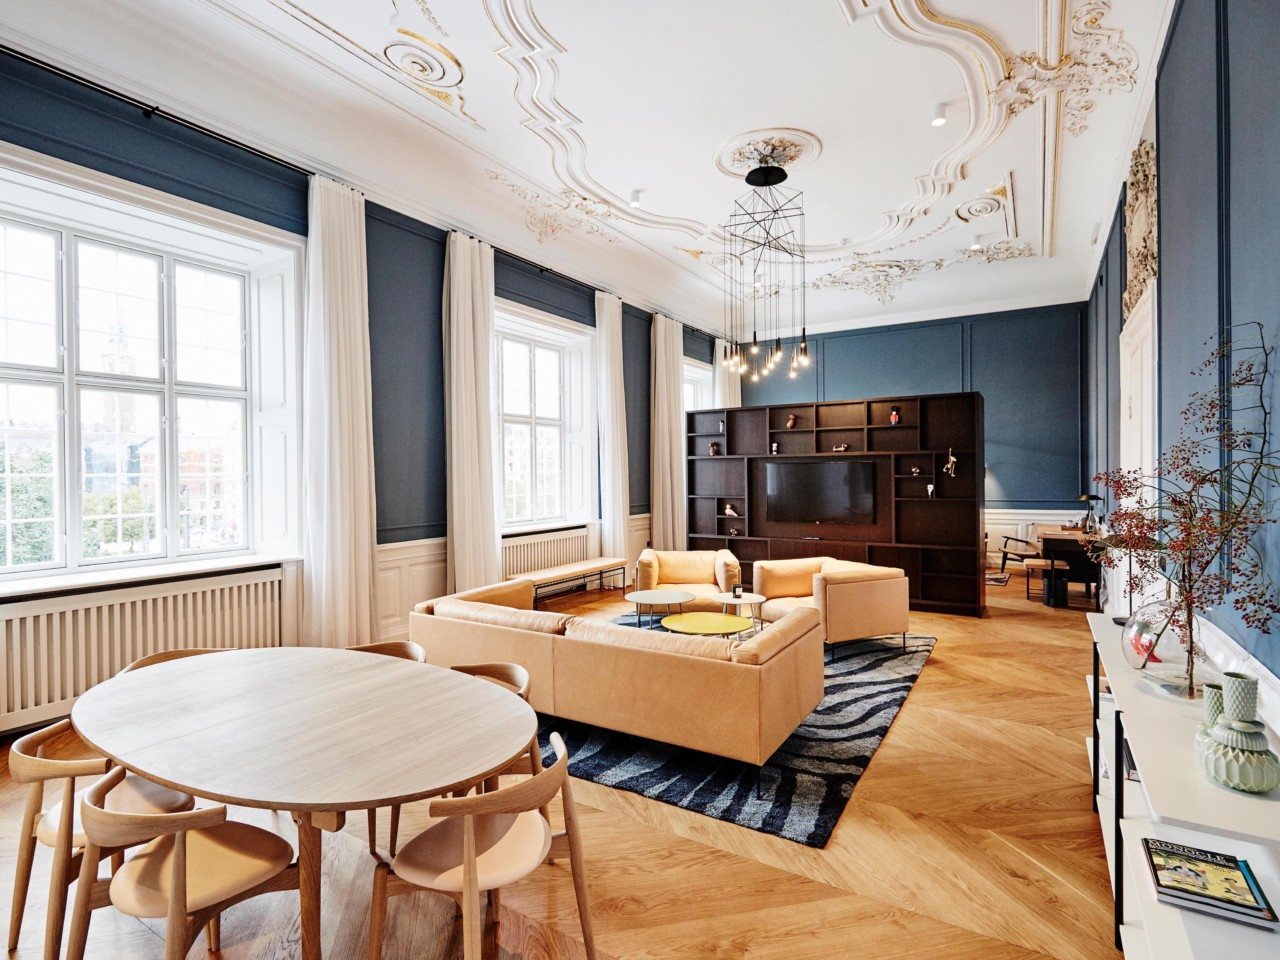 Contemporary design meets classic design at the nobis for Design hotel copenhagen